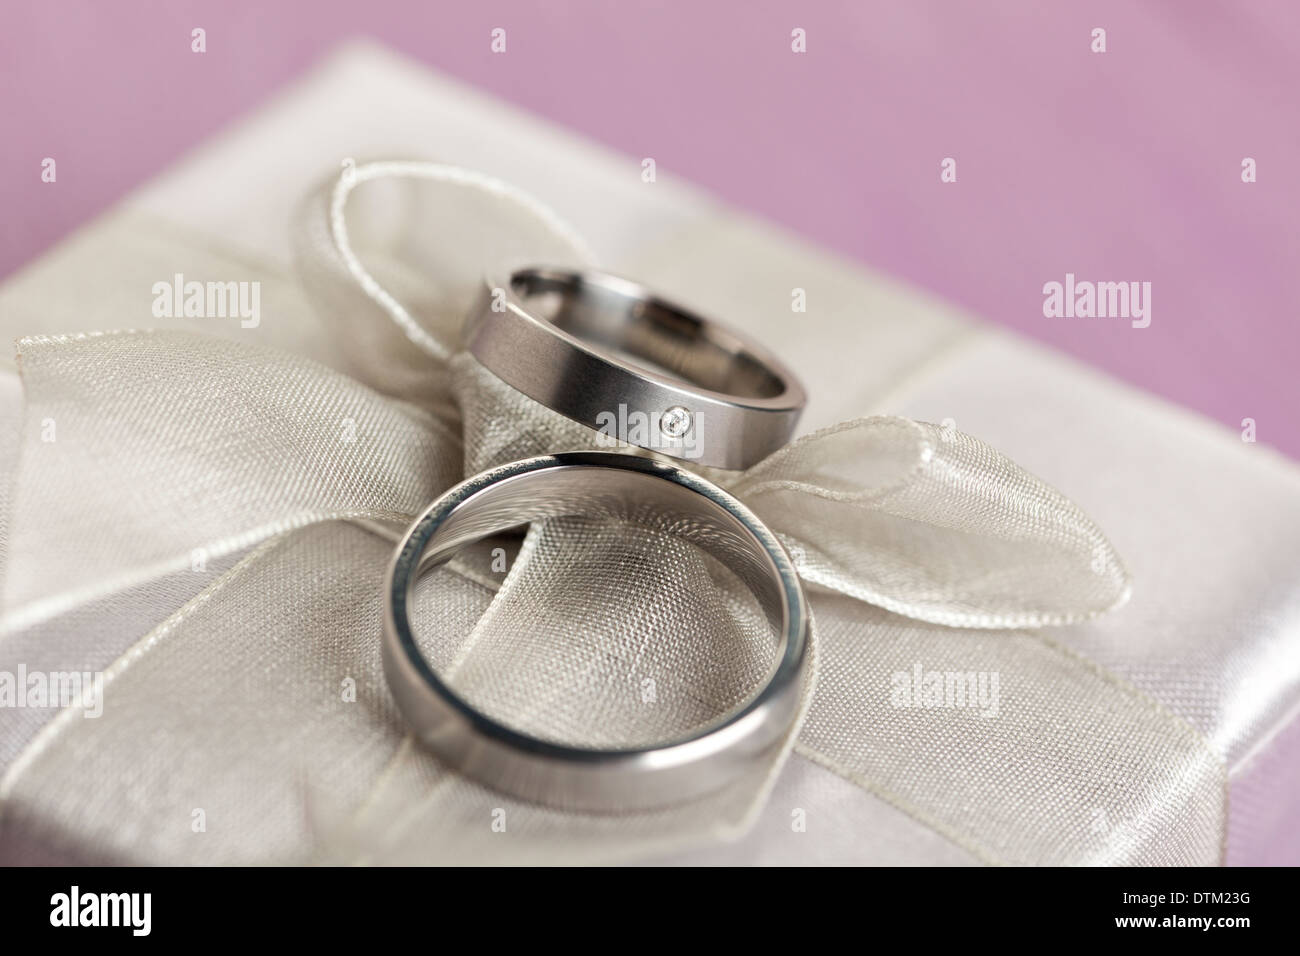 Pair of wedding rings on gift box with silver bow - Stock Image